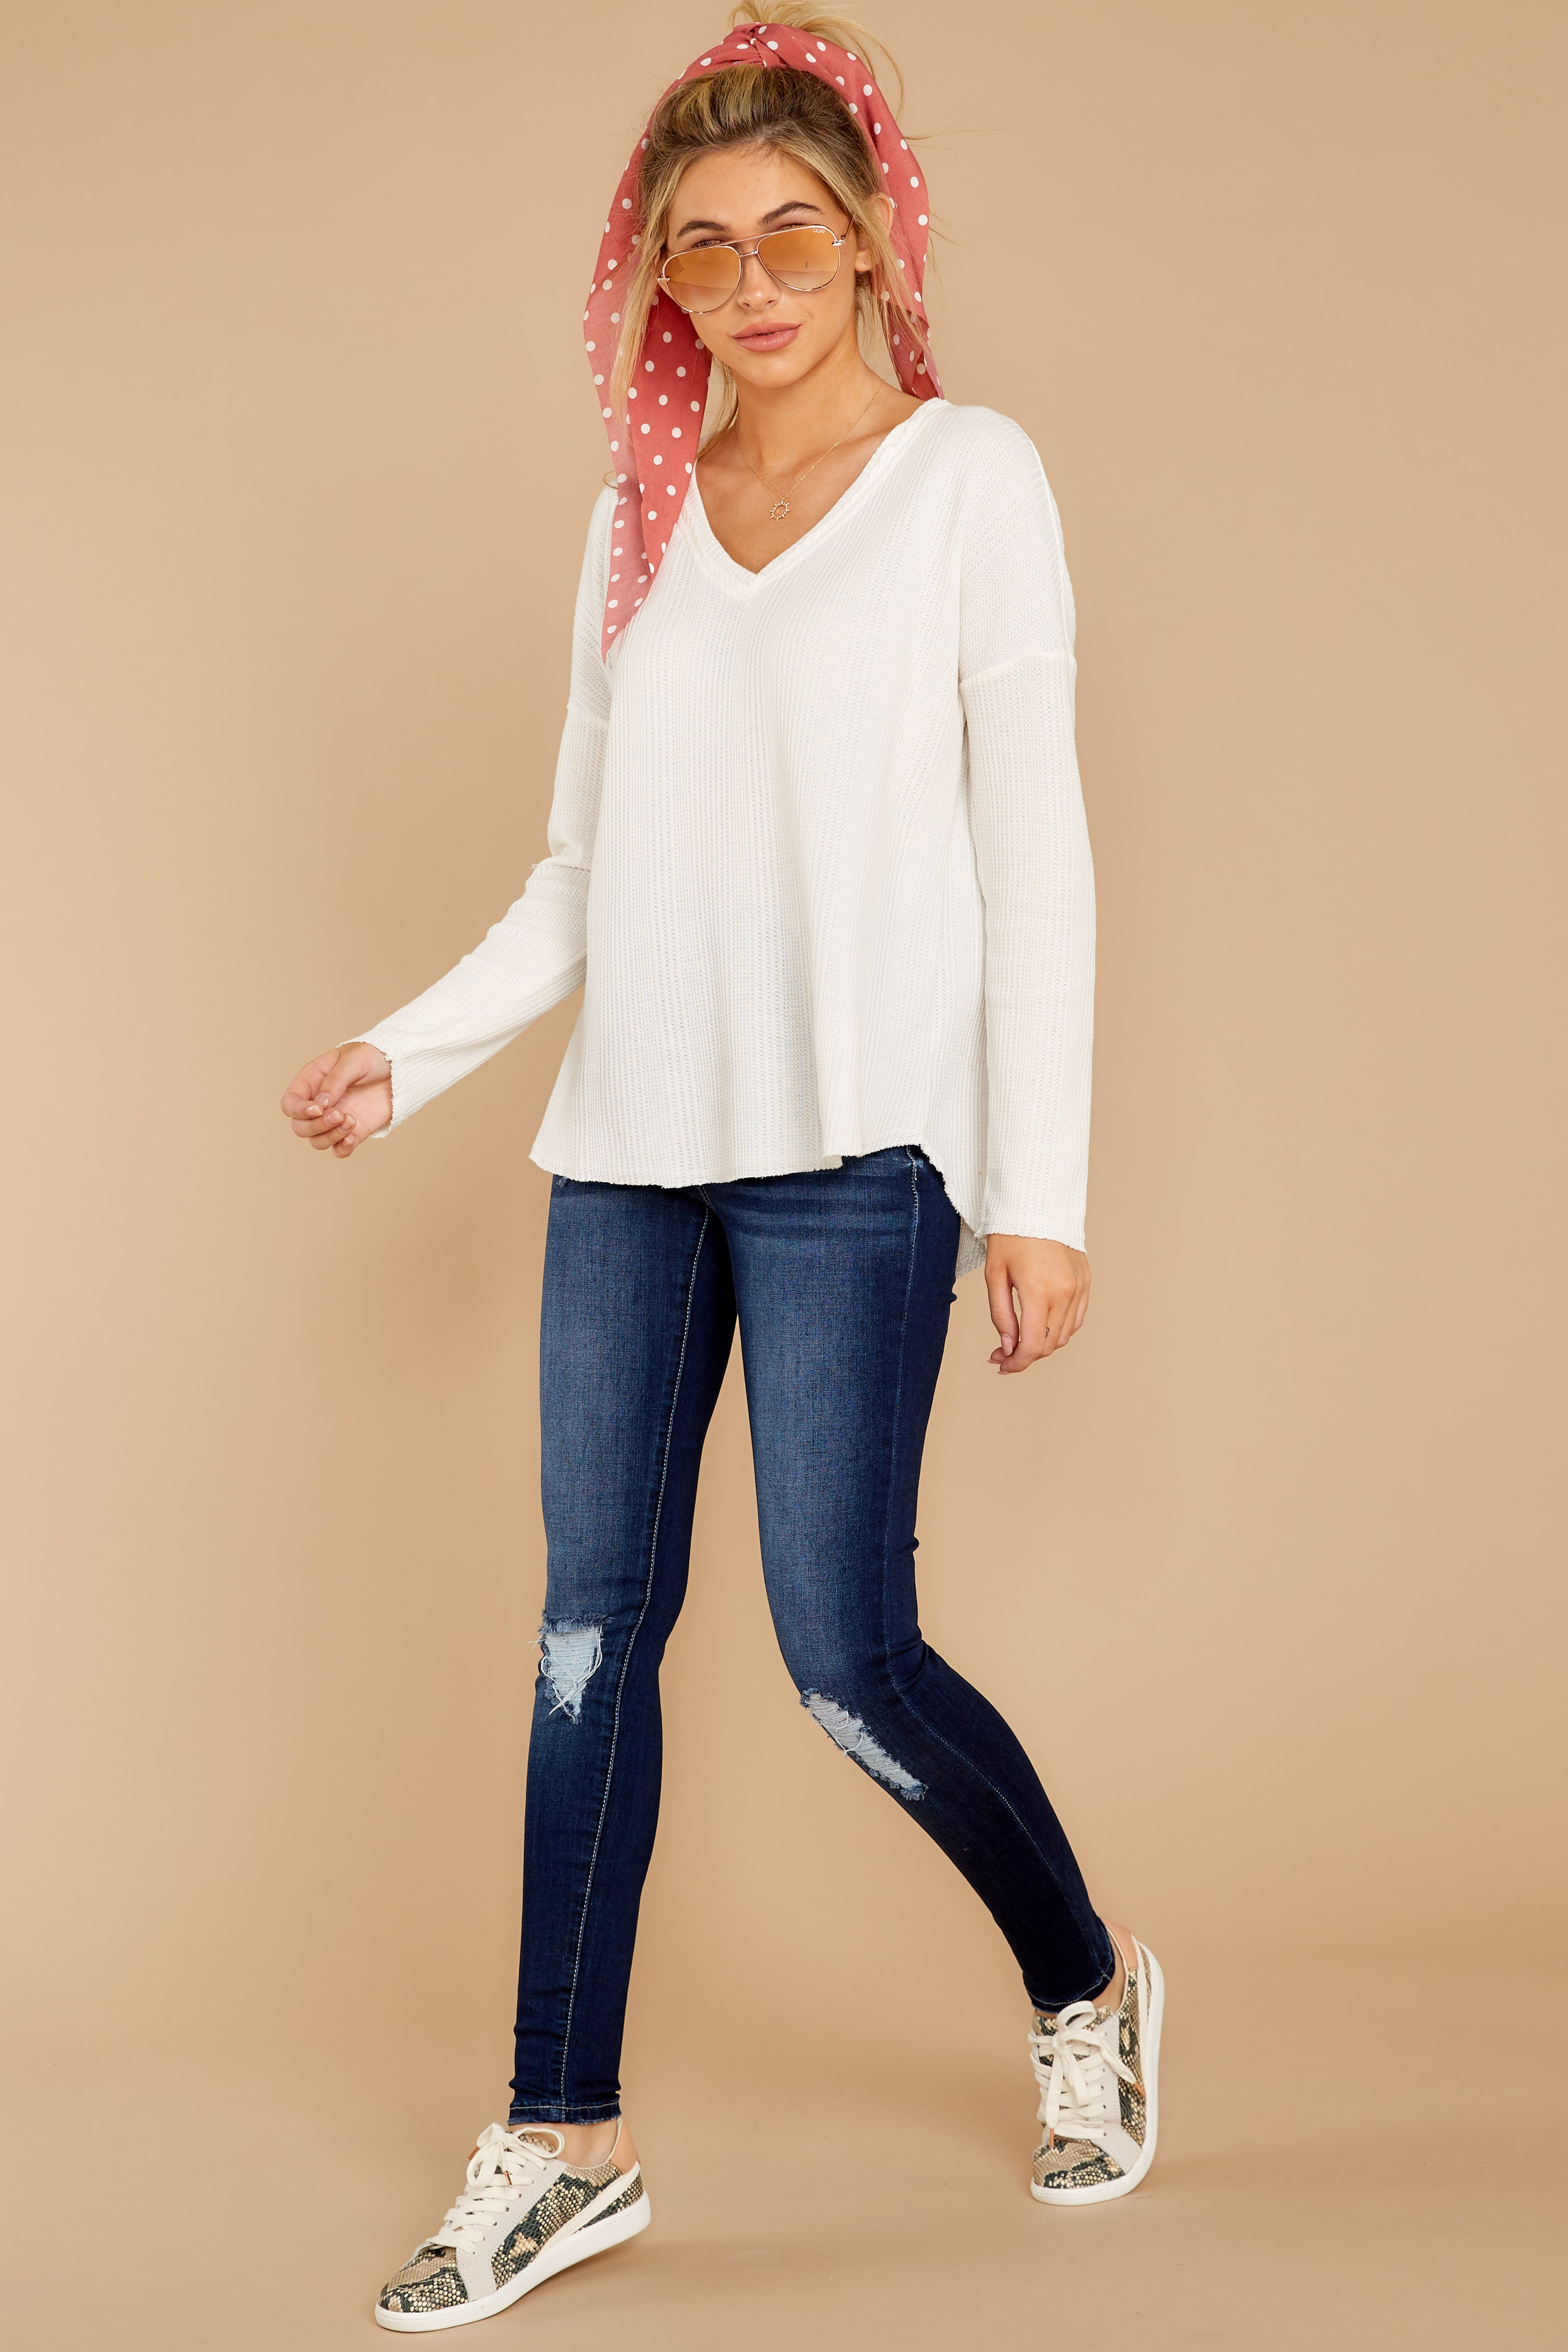 4 Pep Talks White Waffle Knit Top at reddressboutique.com